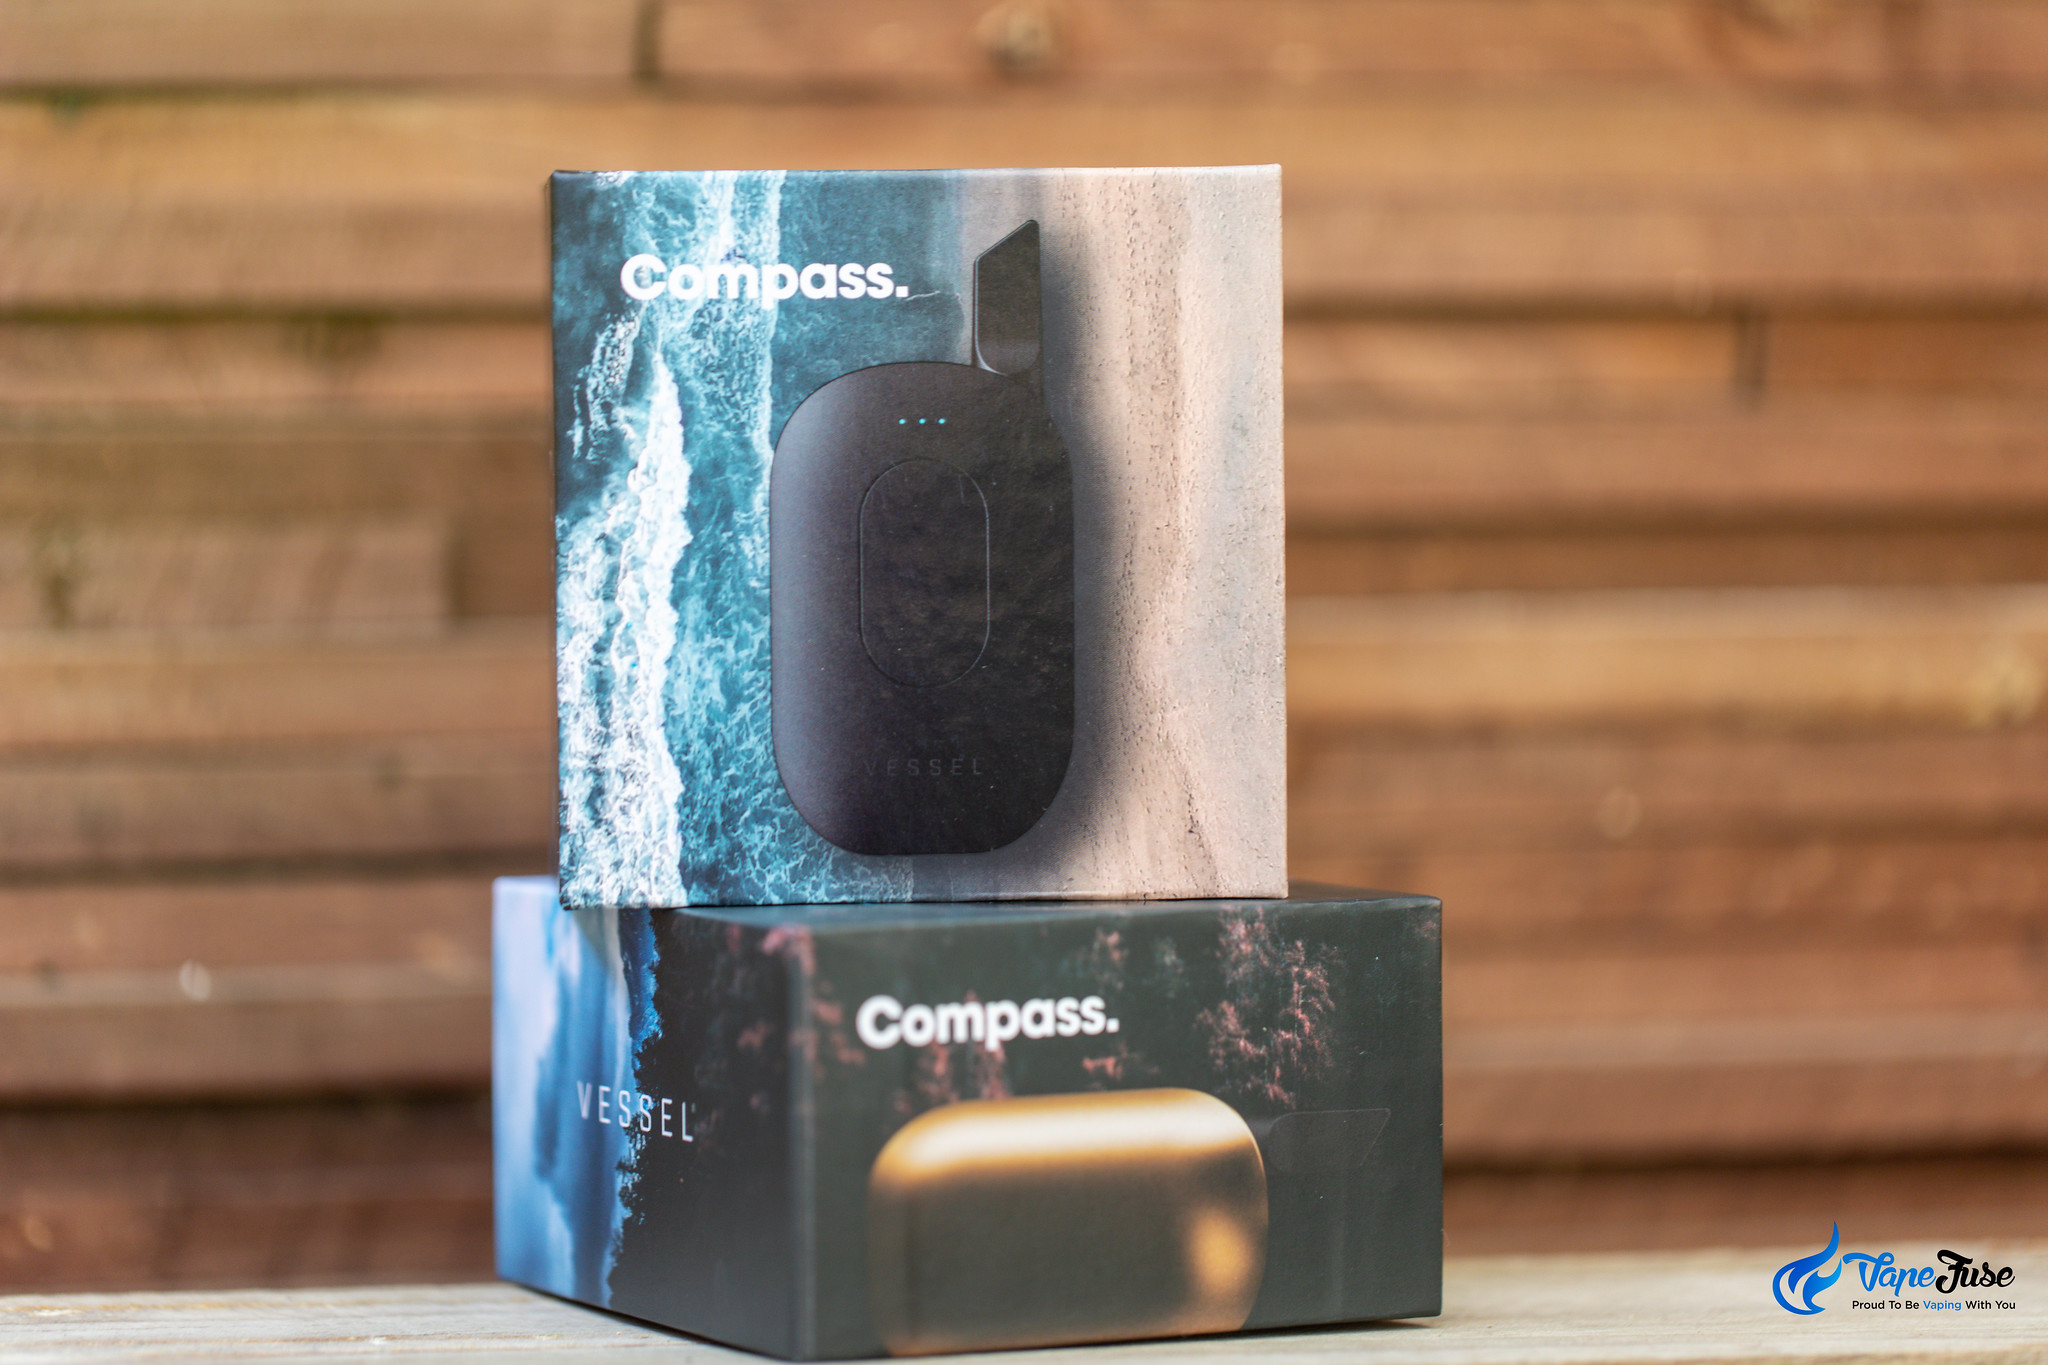 Compass vaporizer batteries in boxes